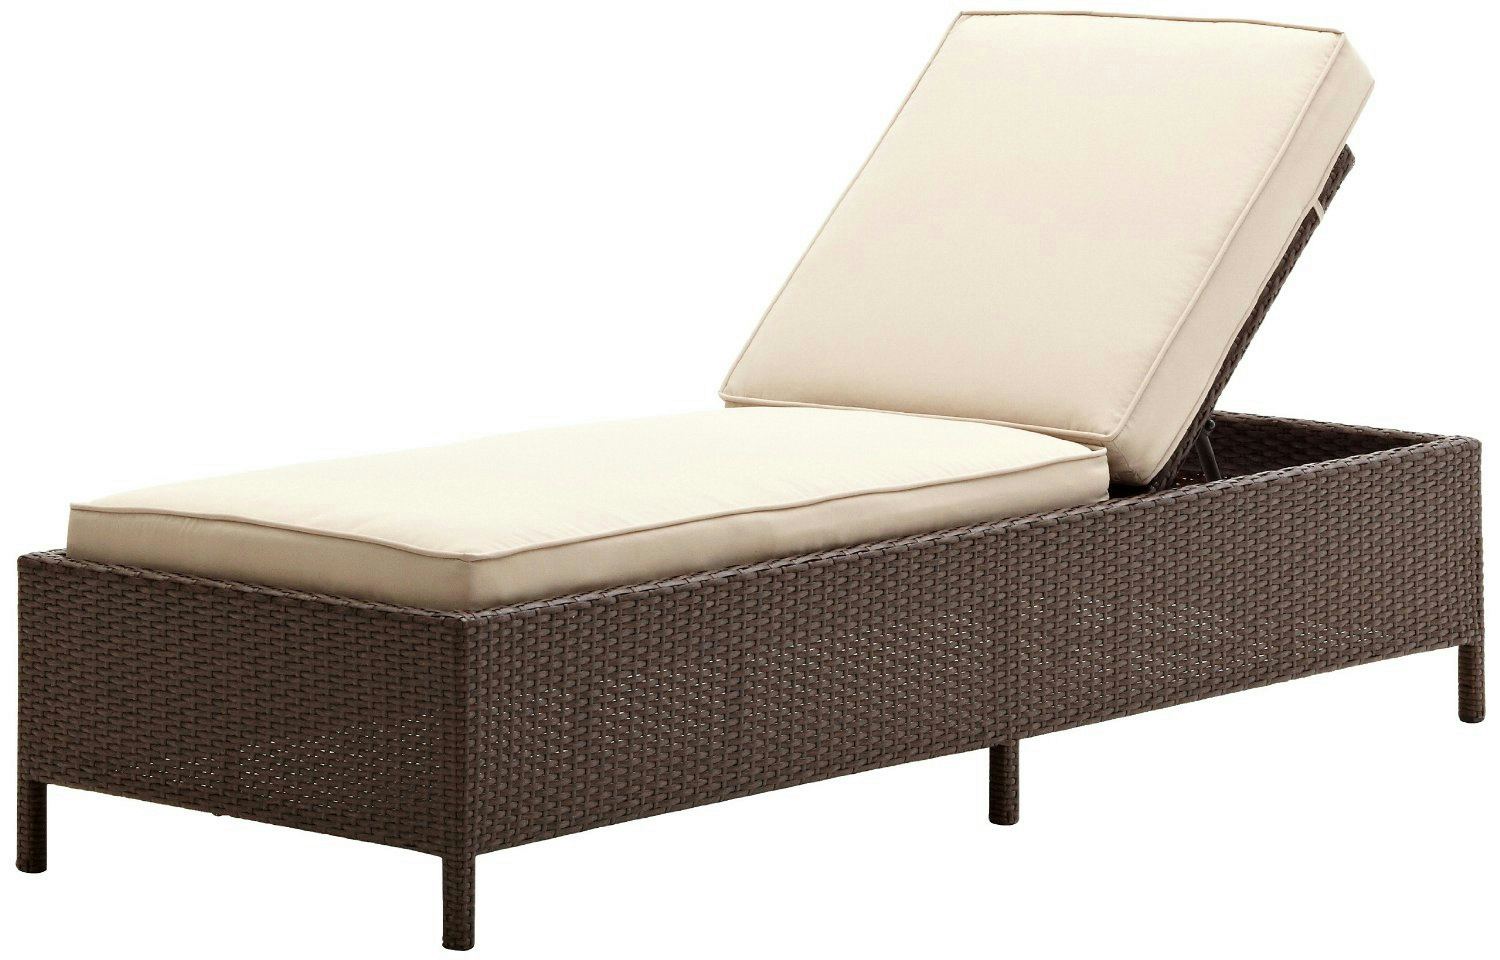 Lounge Rattan Strathwood Griffen All Weather Wicker Chaise Lounge Ebay